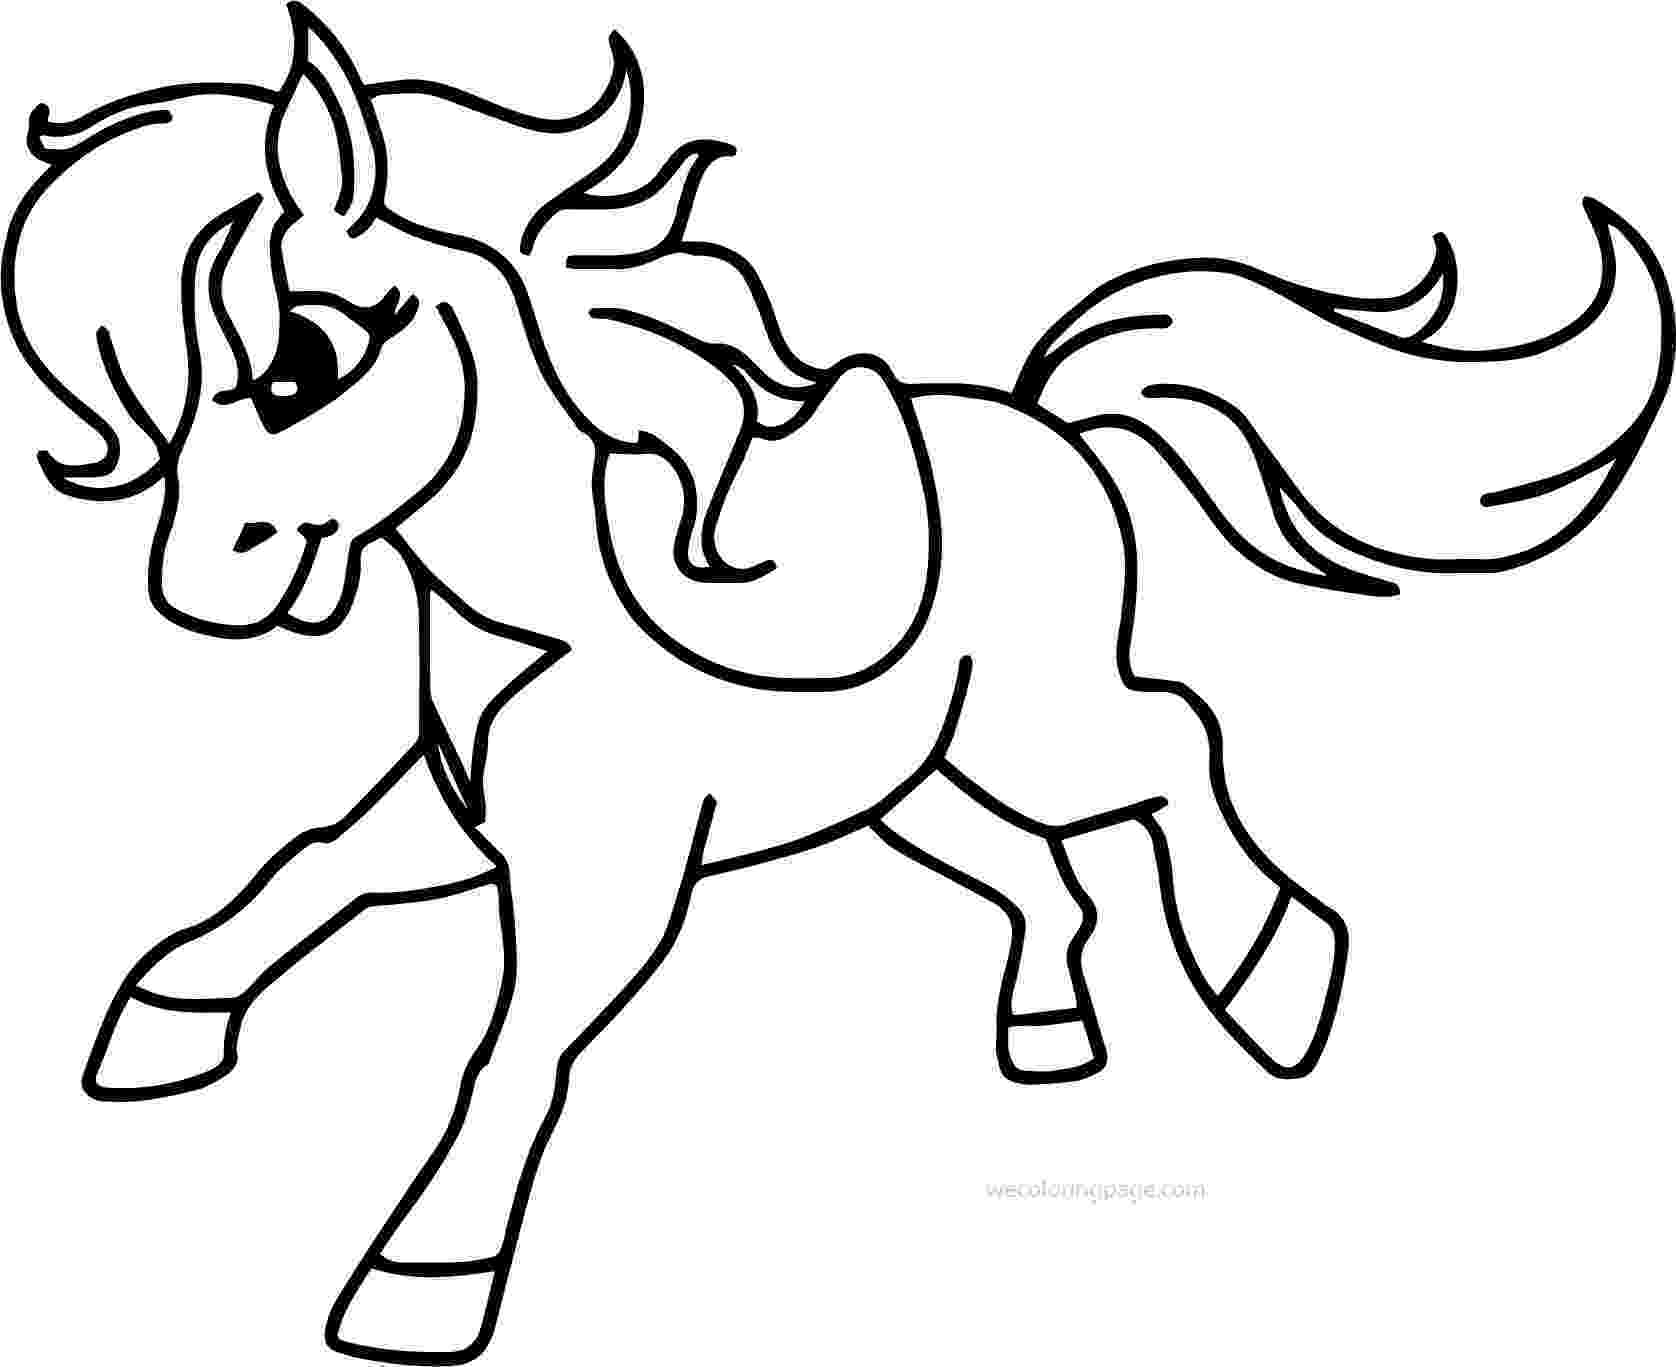 running horse coloring pages running horse coloring book pictures wowcom image coloring running pages horse